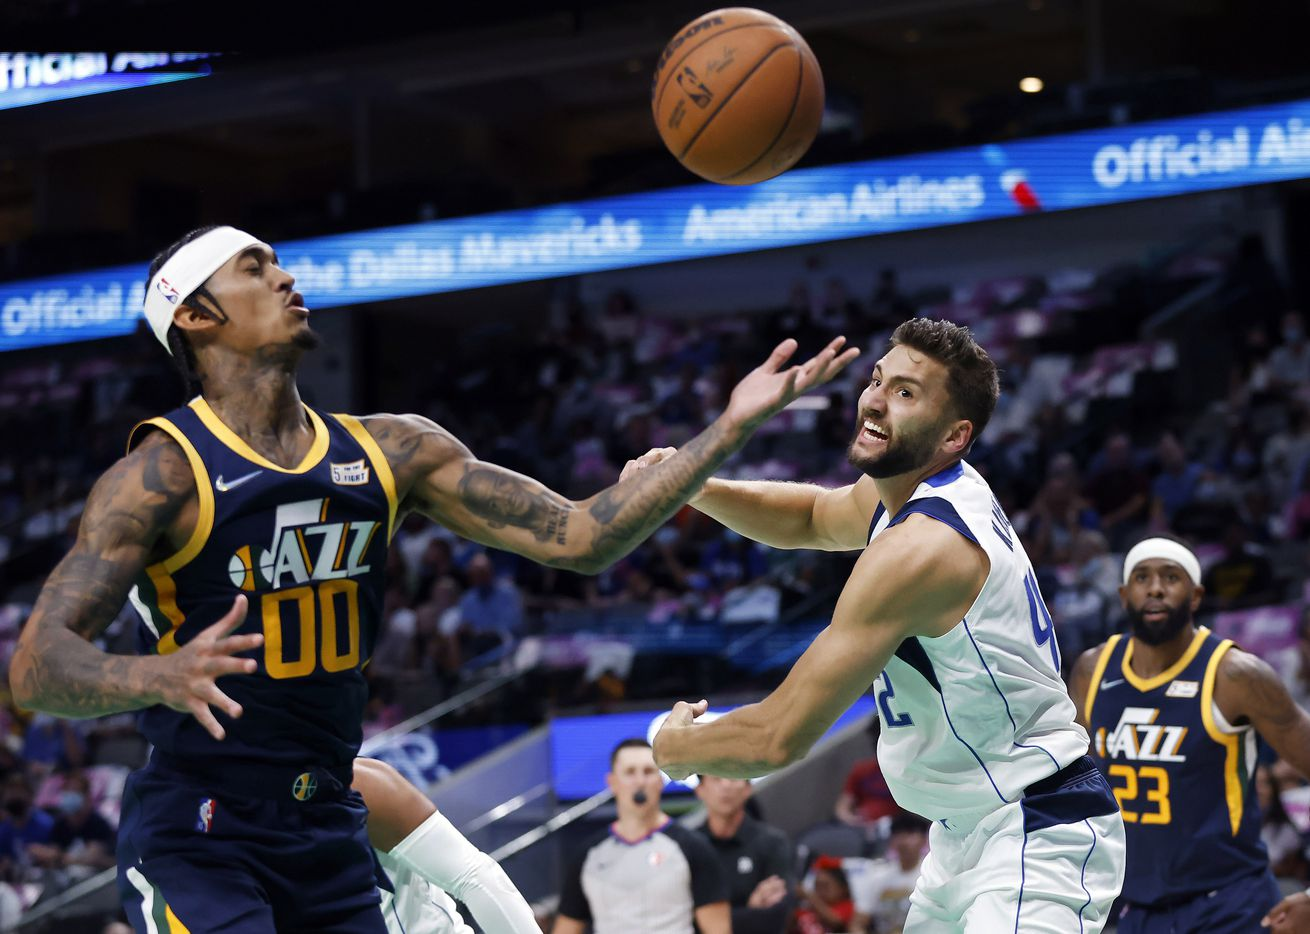 Dallas Mavericks forward Maxi Kleber (42) tries to regain control of a rebound as Utah Jazz guard Jordan Clarkson (00) looks to capture it during the first half at the American Airlines Center in Dallas, Wednesday, October 6, 2021.(Tom Fox/The Dallas Morning News)